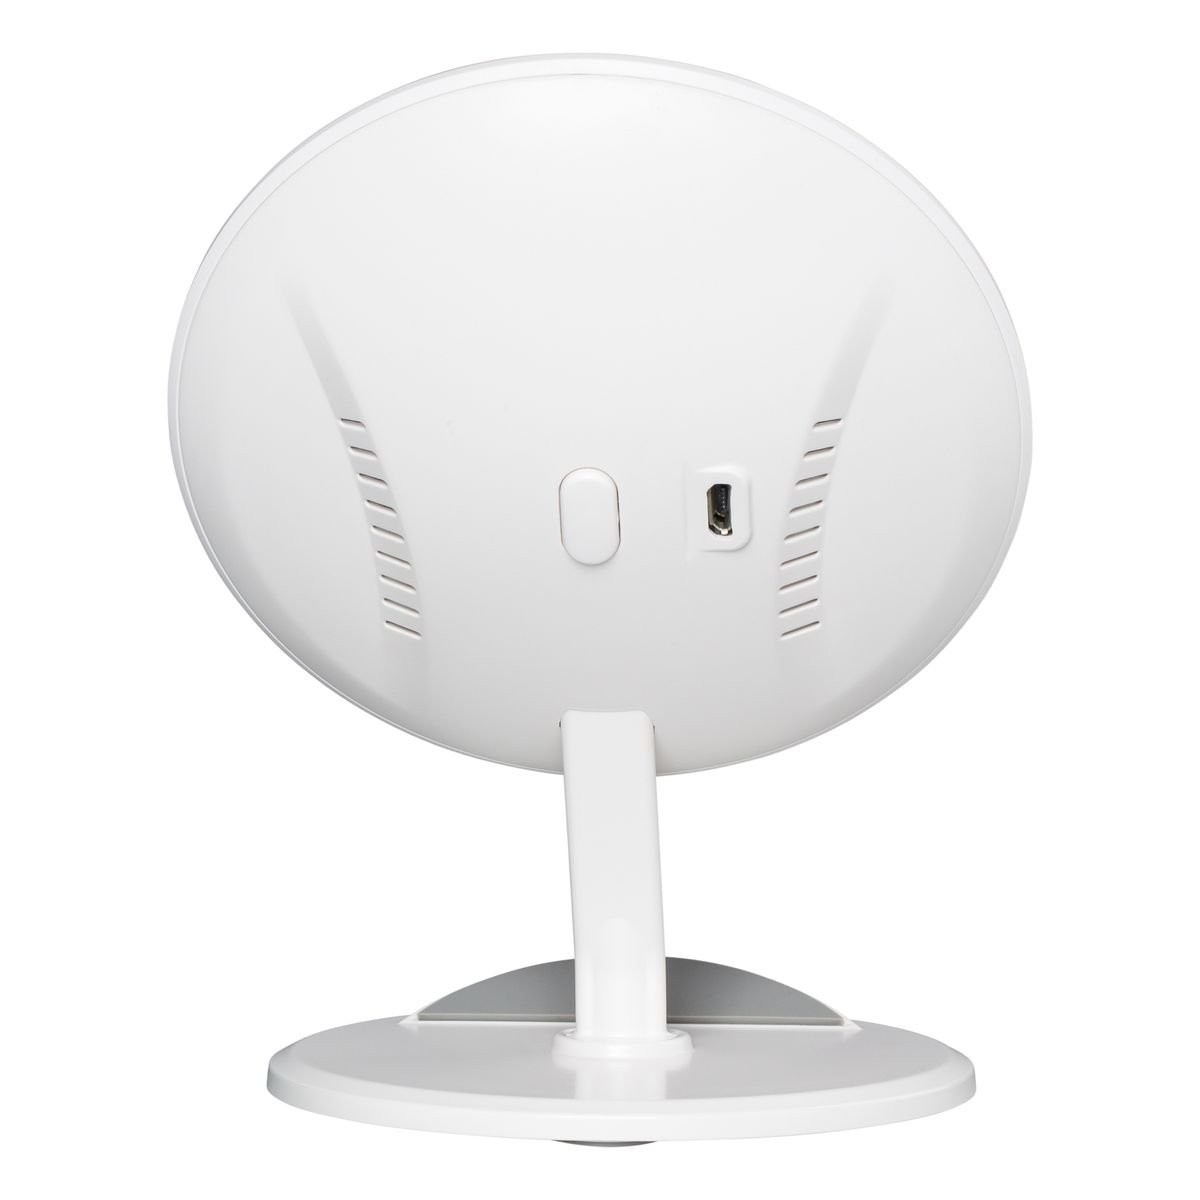 Wireless charging stand REFLECTS-VENICE WHITE, View 7